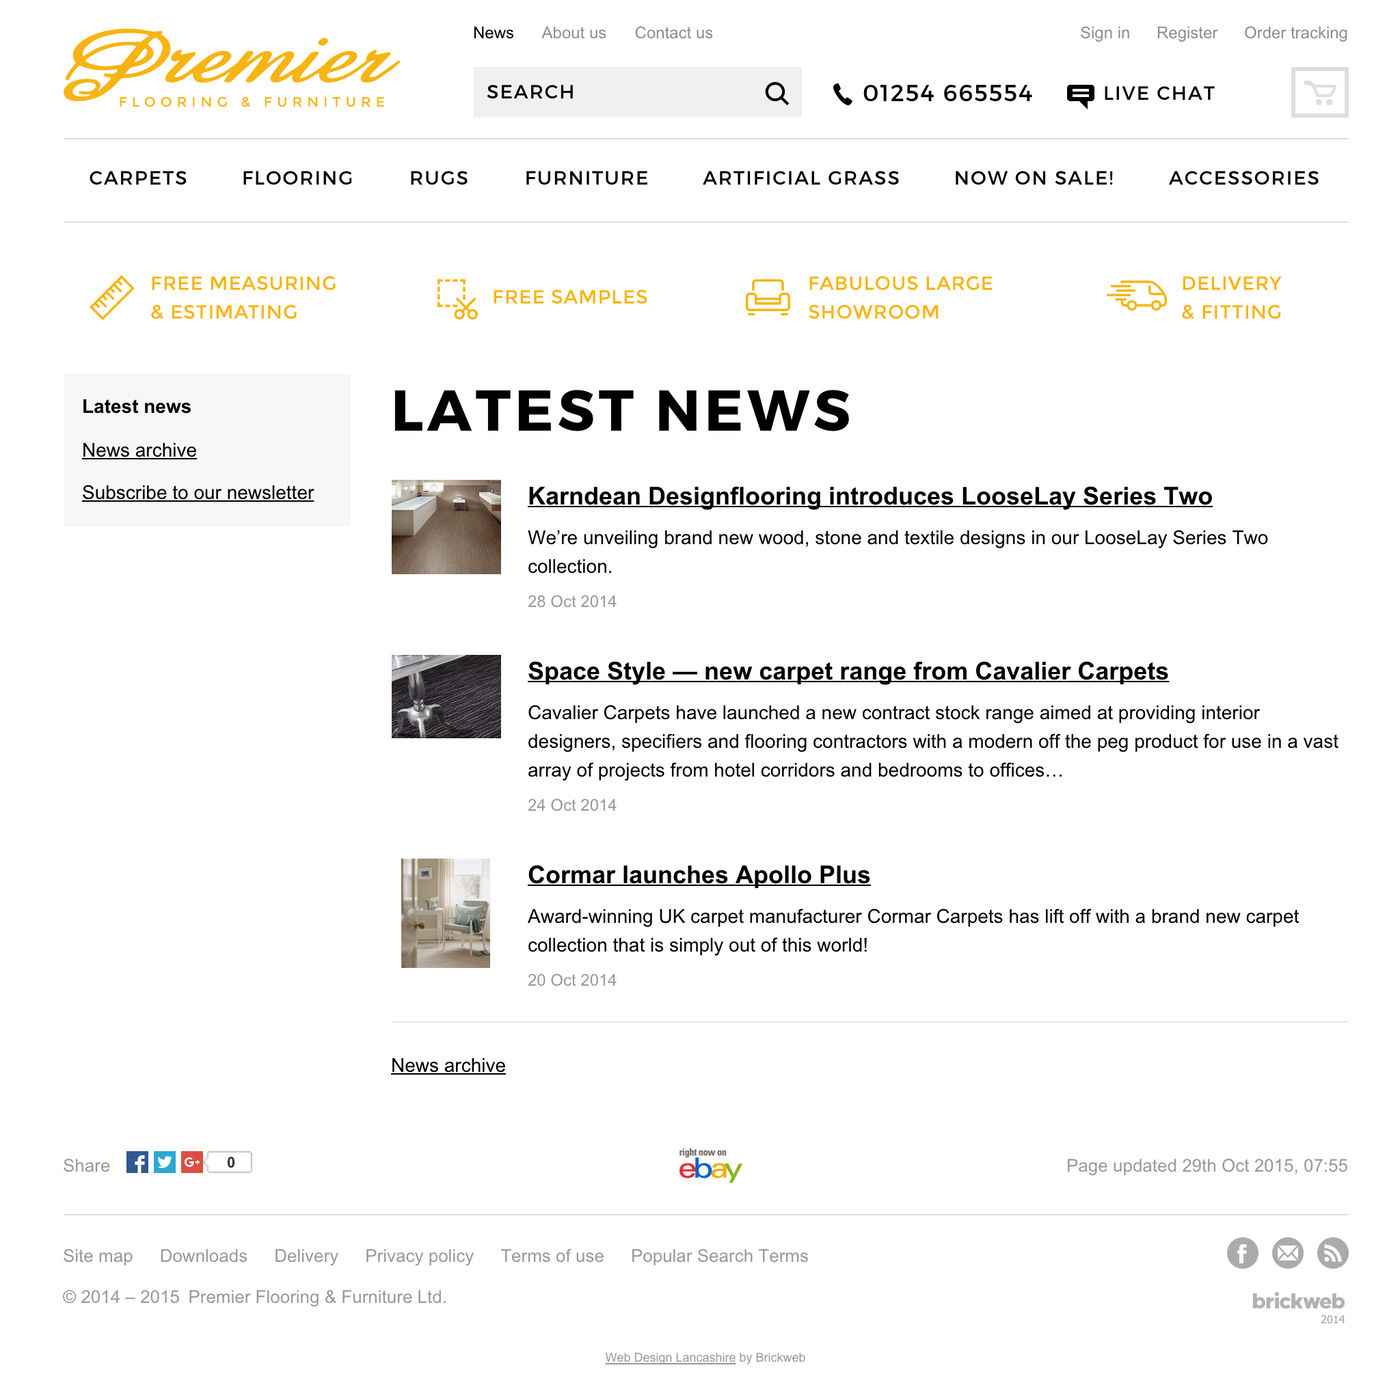 Premier Flooring & Furniture Ltd Latest news